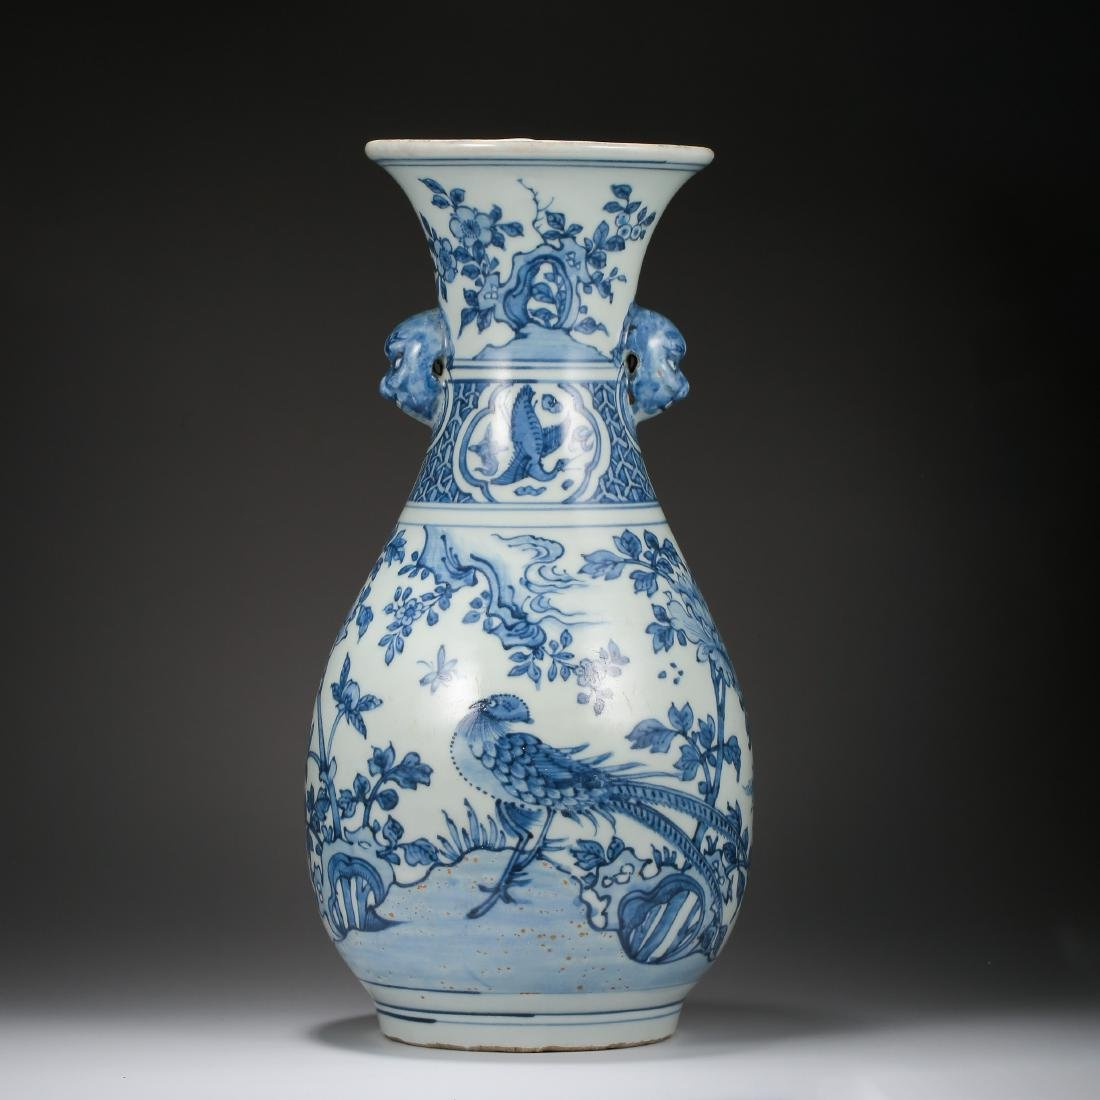 CHINESE PORCELAIN BLUE AND WHITE BIRD AND FLOWER VASE